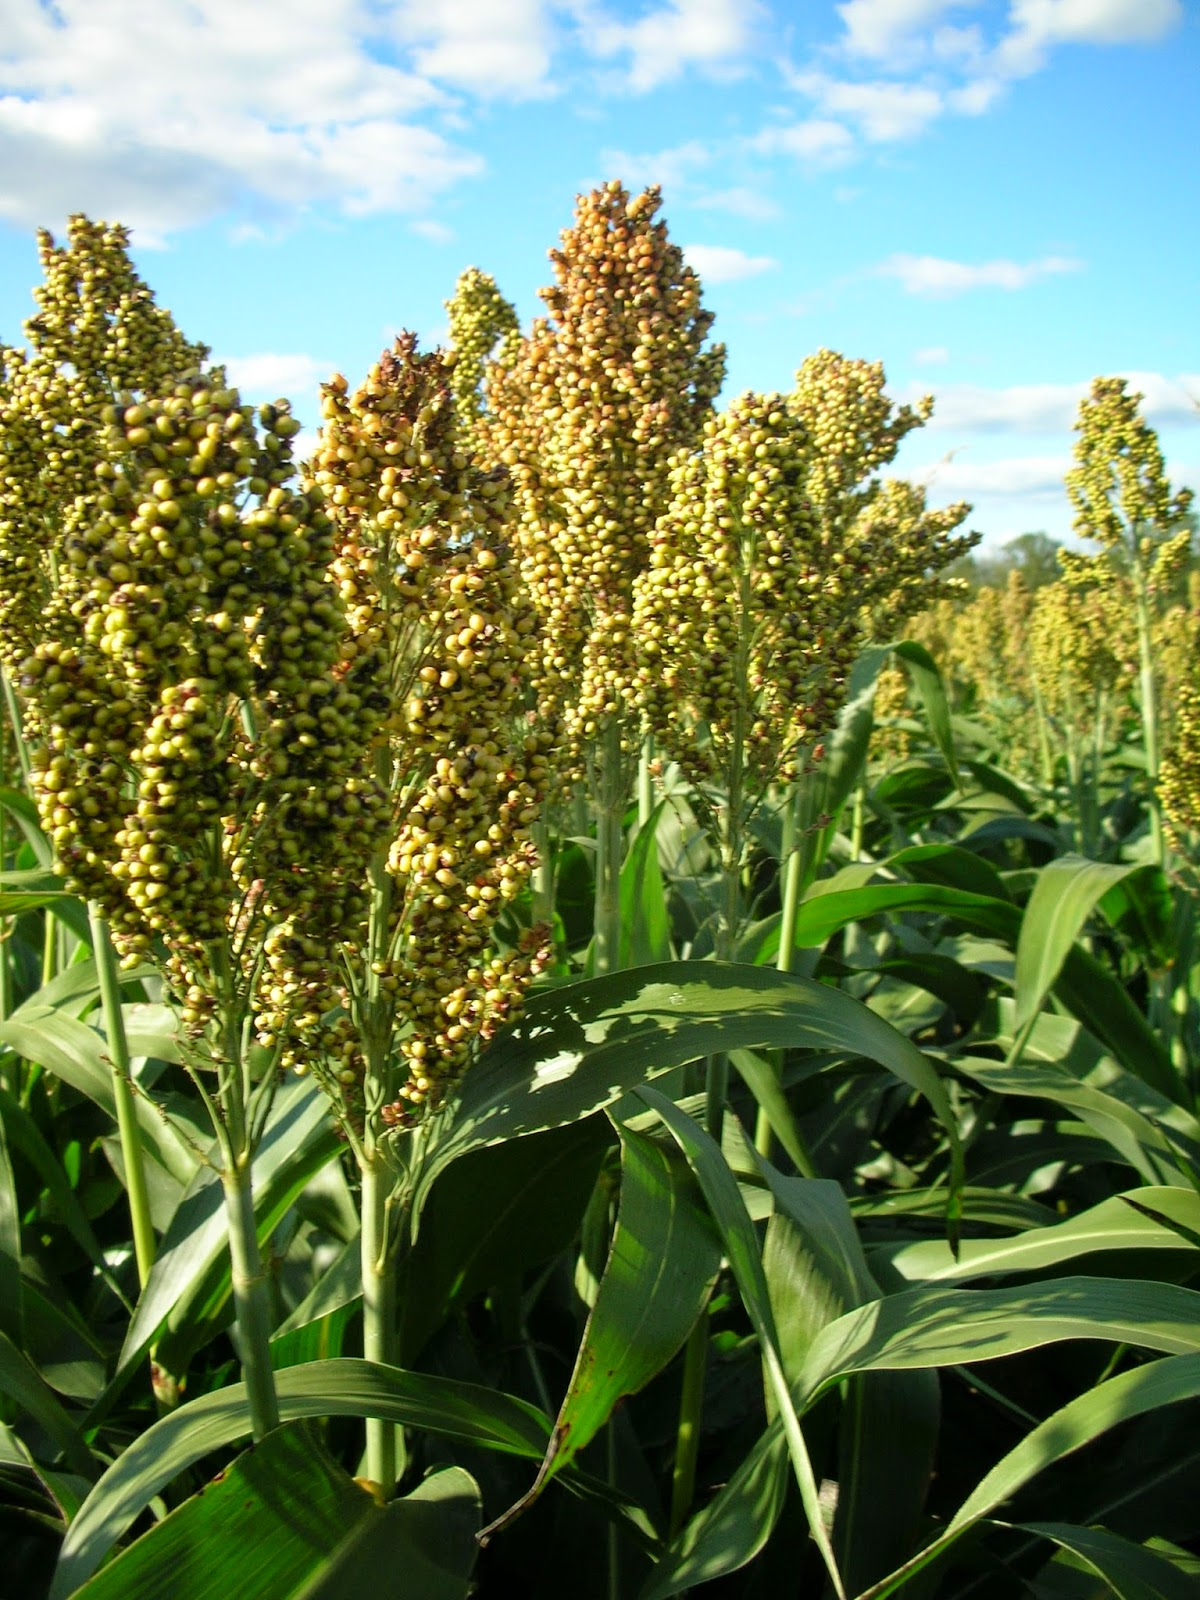 http://www.agprofessional.com/news/chinese-sorghum-demand-spurs-crop%E2%80%99s-growth-investment